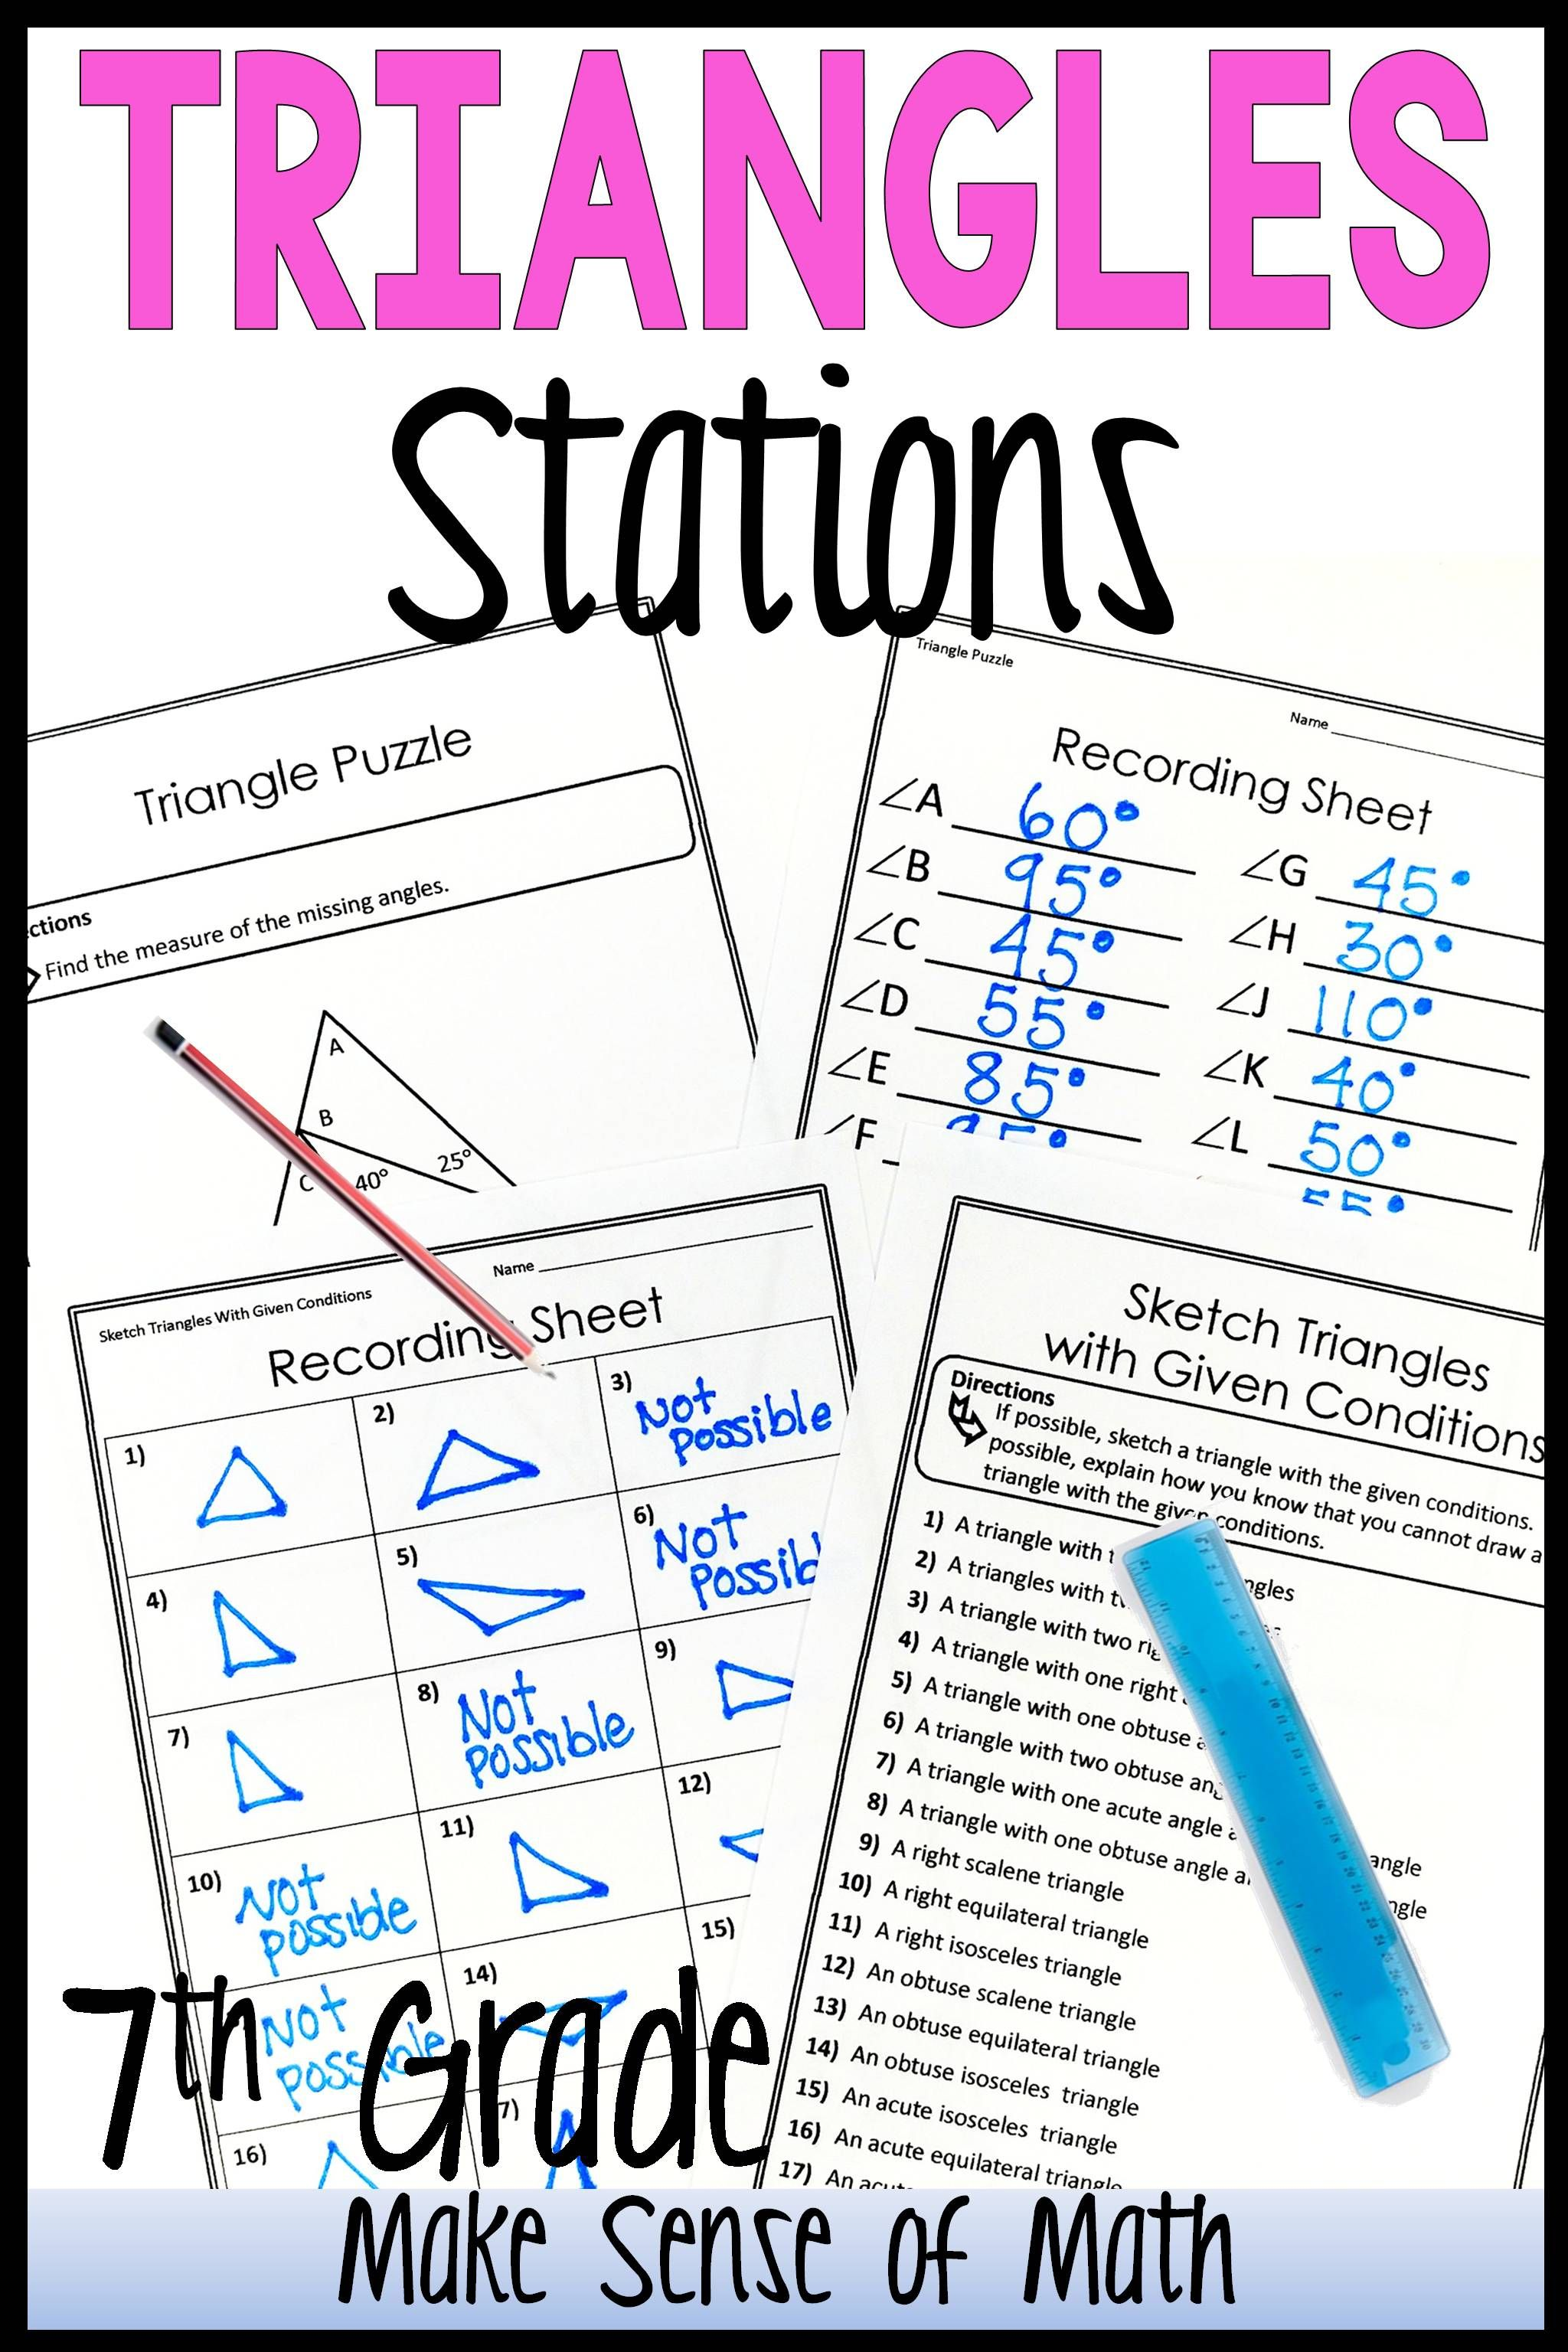 Triangles Stations